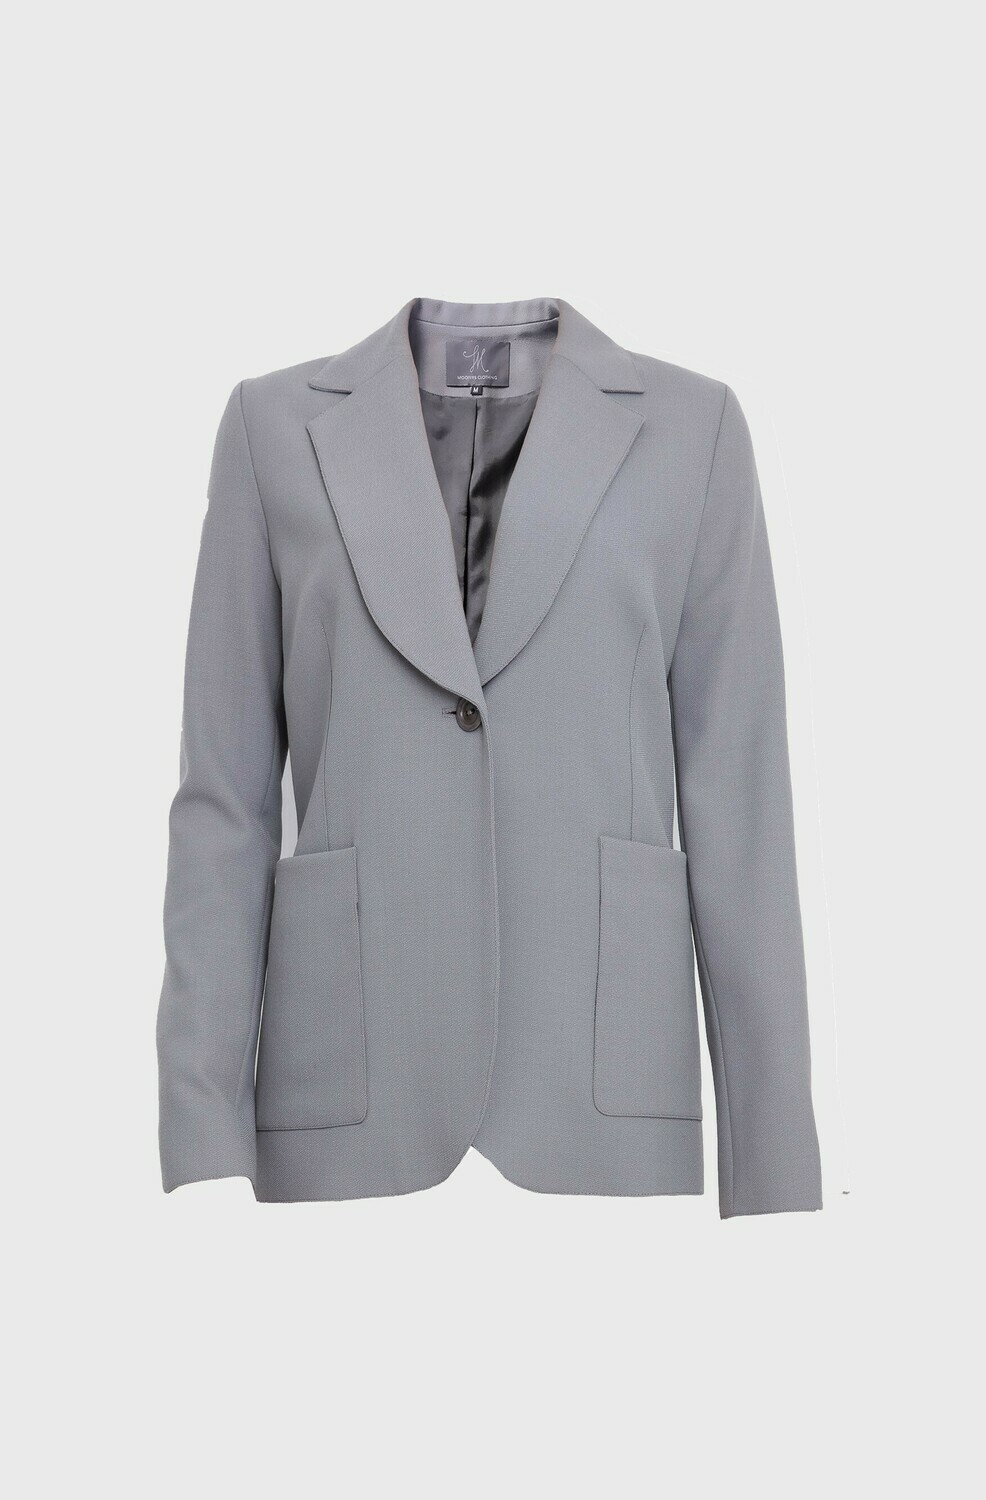 PATCH POCKET SOFT TAILORED JACKET IN GREY